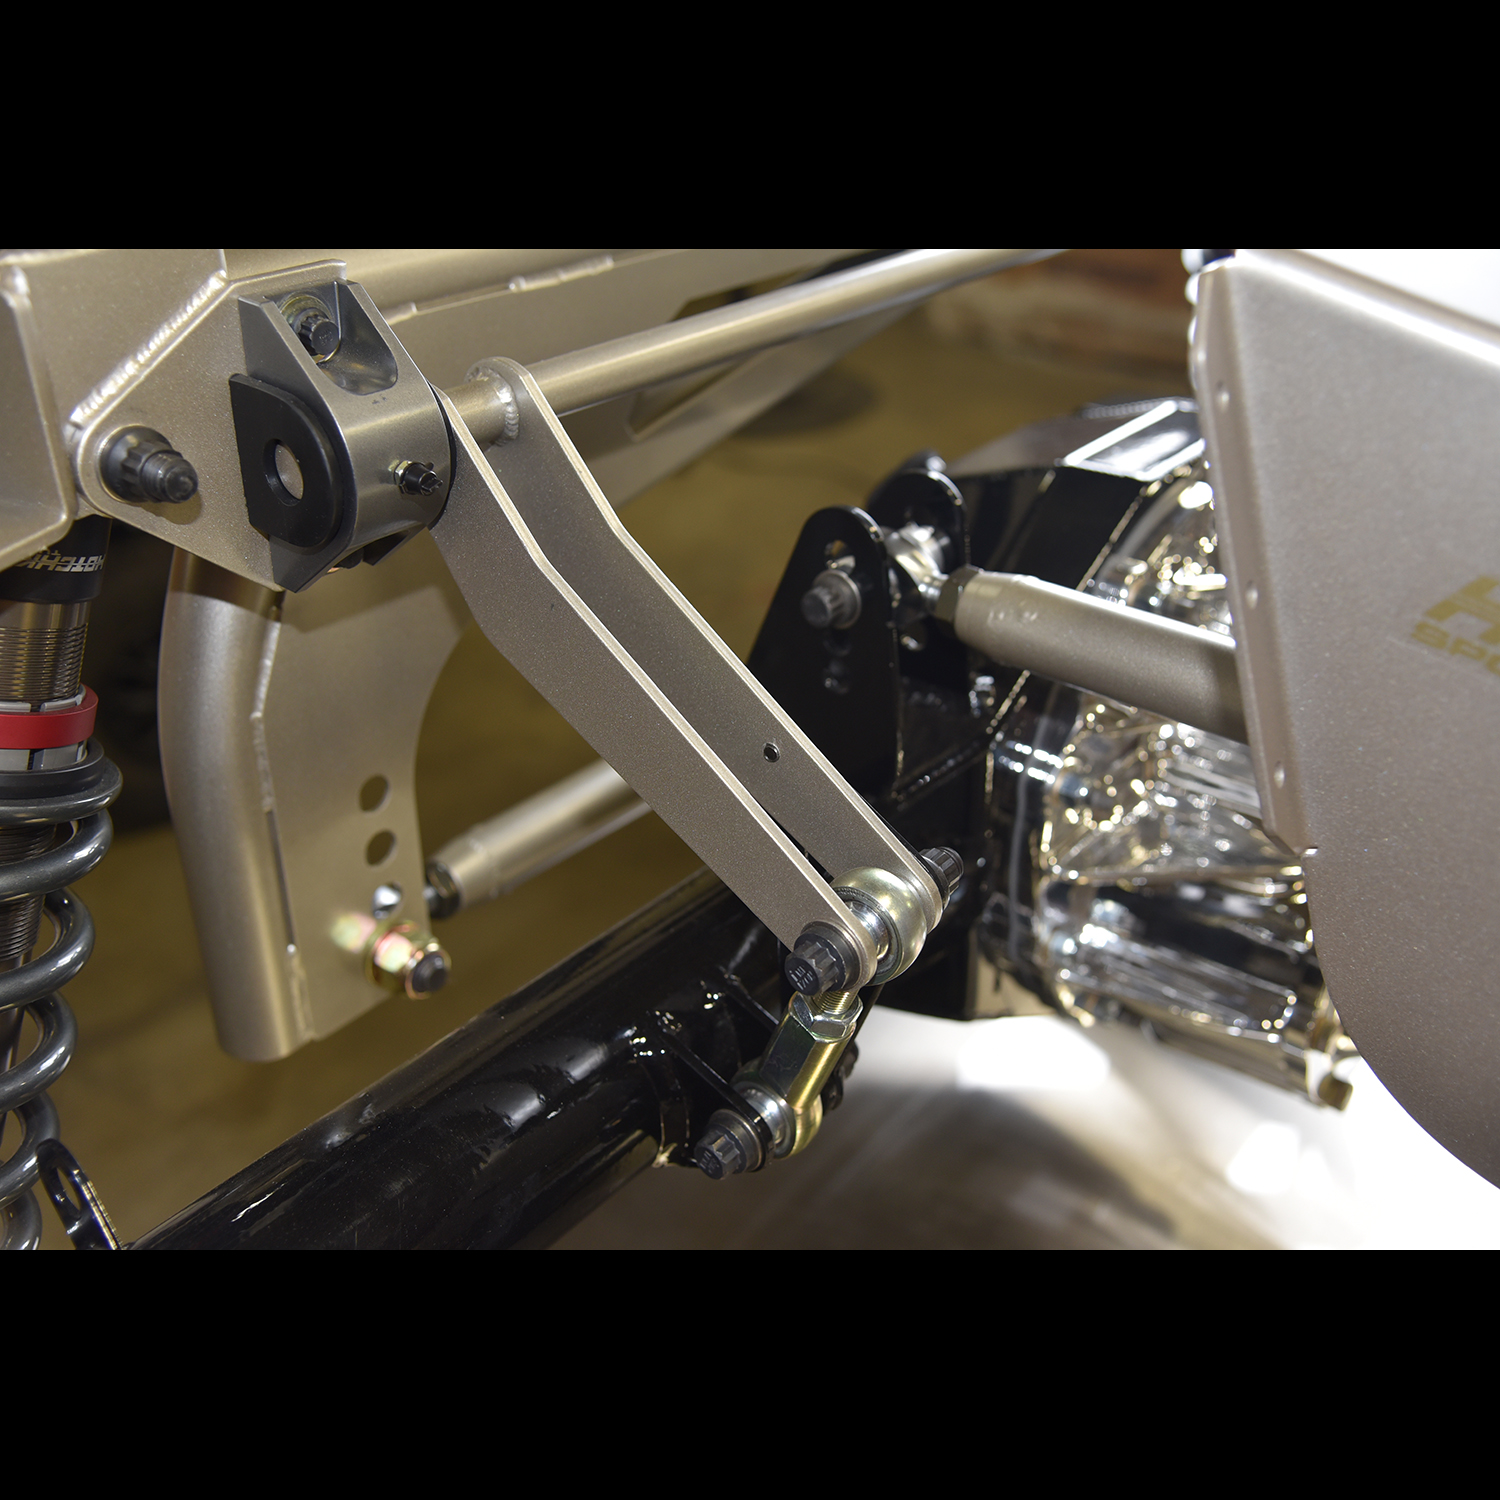 HOTCHKIS SPORT SUSPENSION SYSTEMS, PARTS, AND COMPLETE BOLT